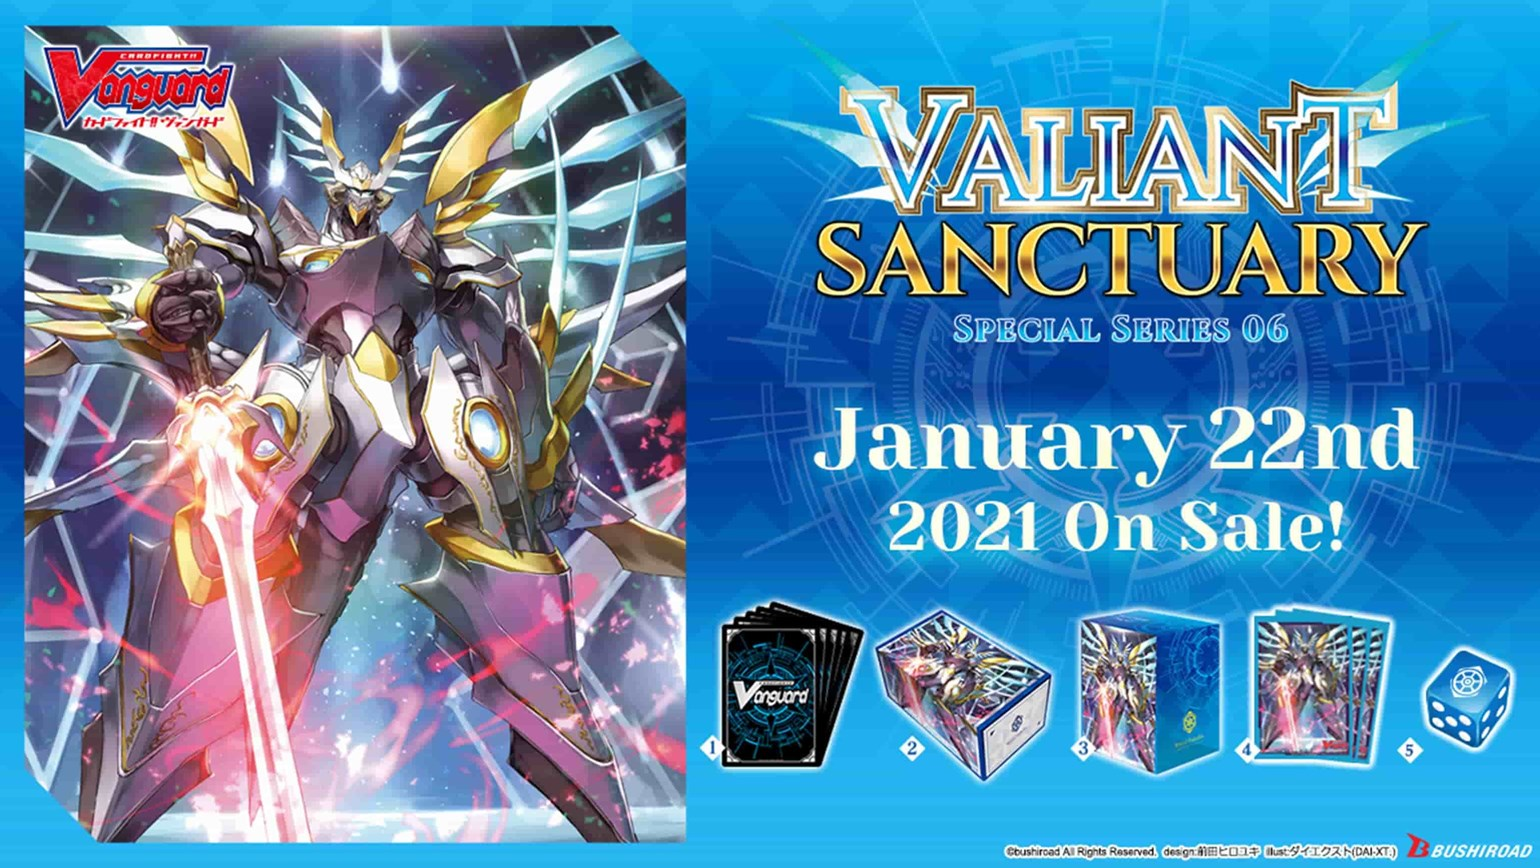 "New English Edition Special Series 06 ""Valiant Sanctuary"" is Coming to Stores on January 22nd!"